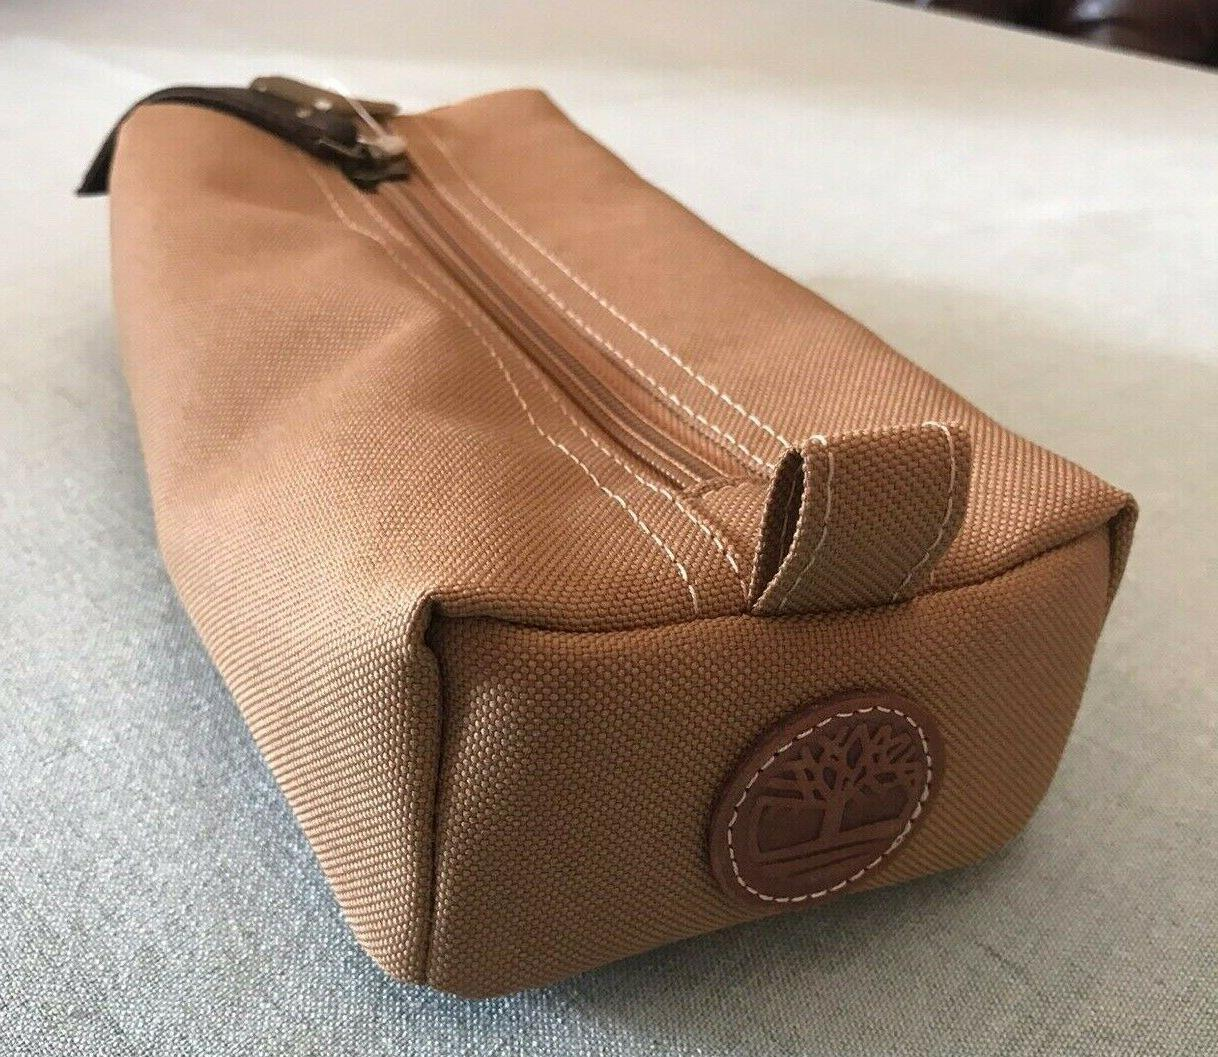 TIMBERLAND CANVAS CASE WITH TAGS